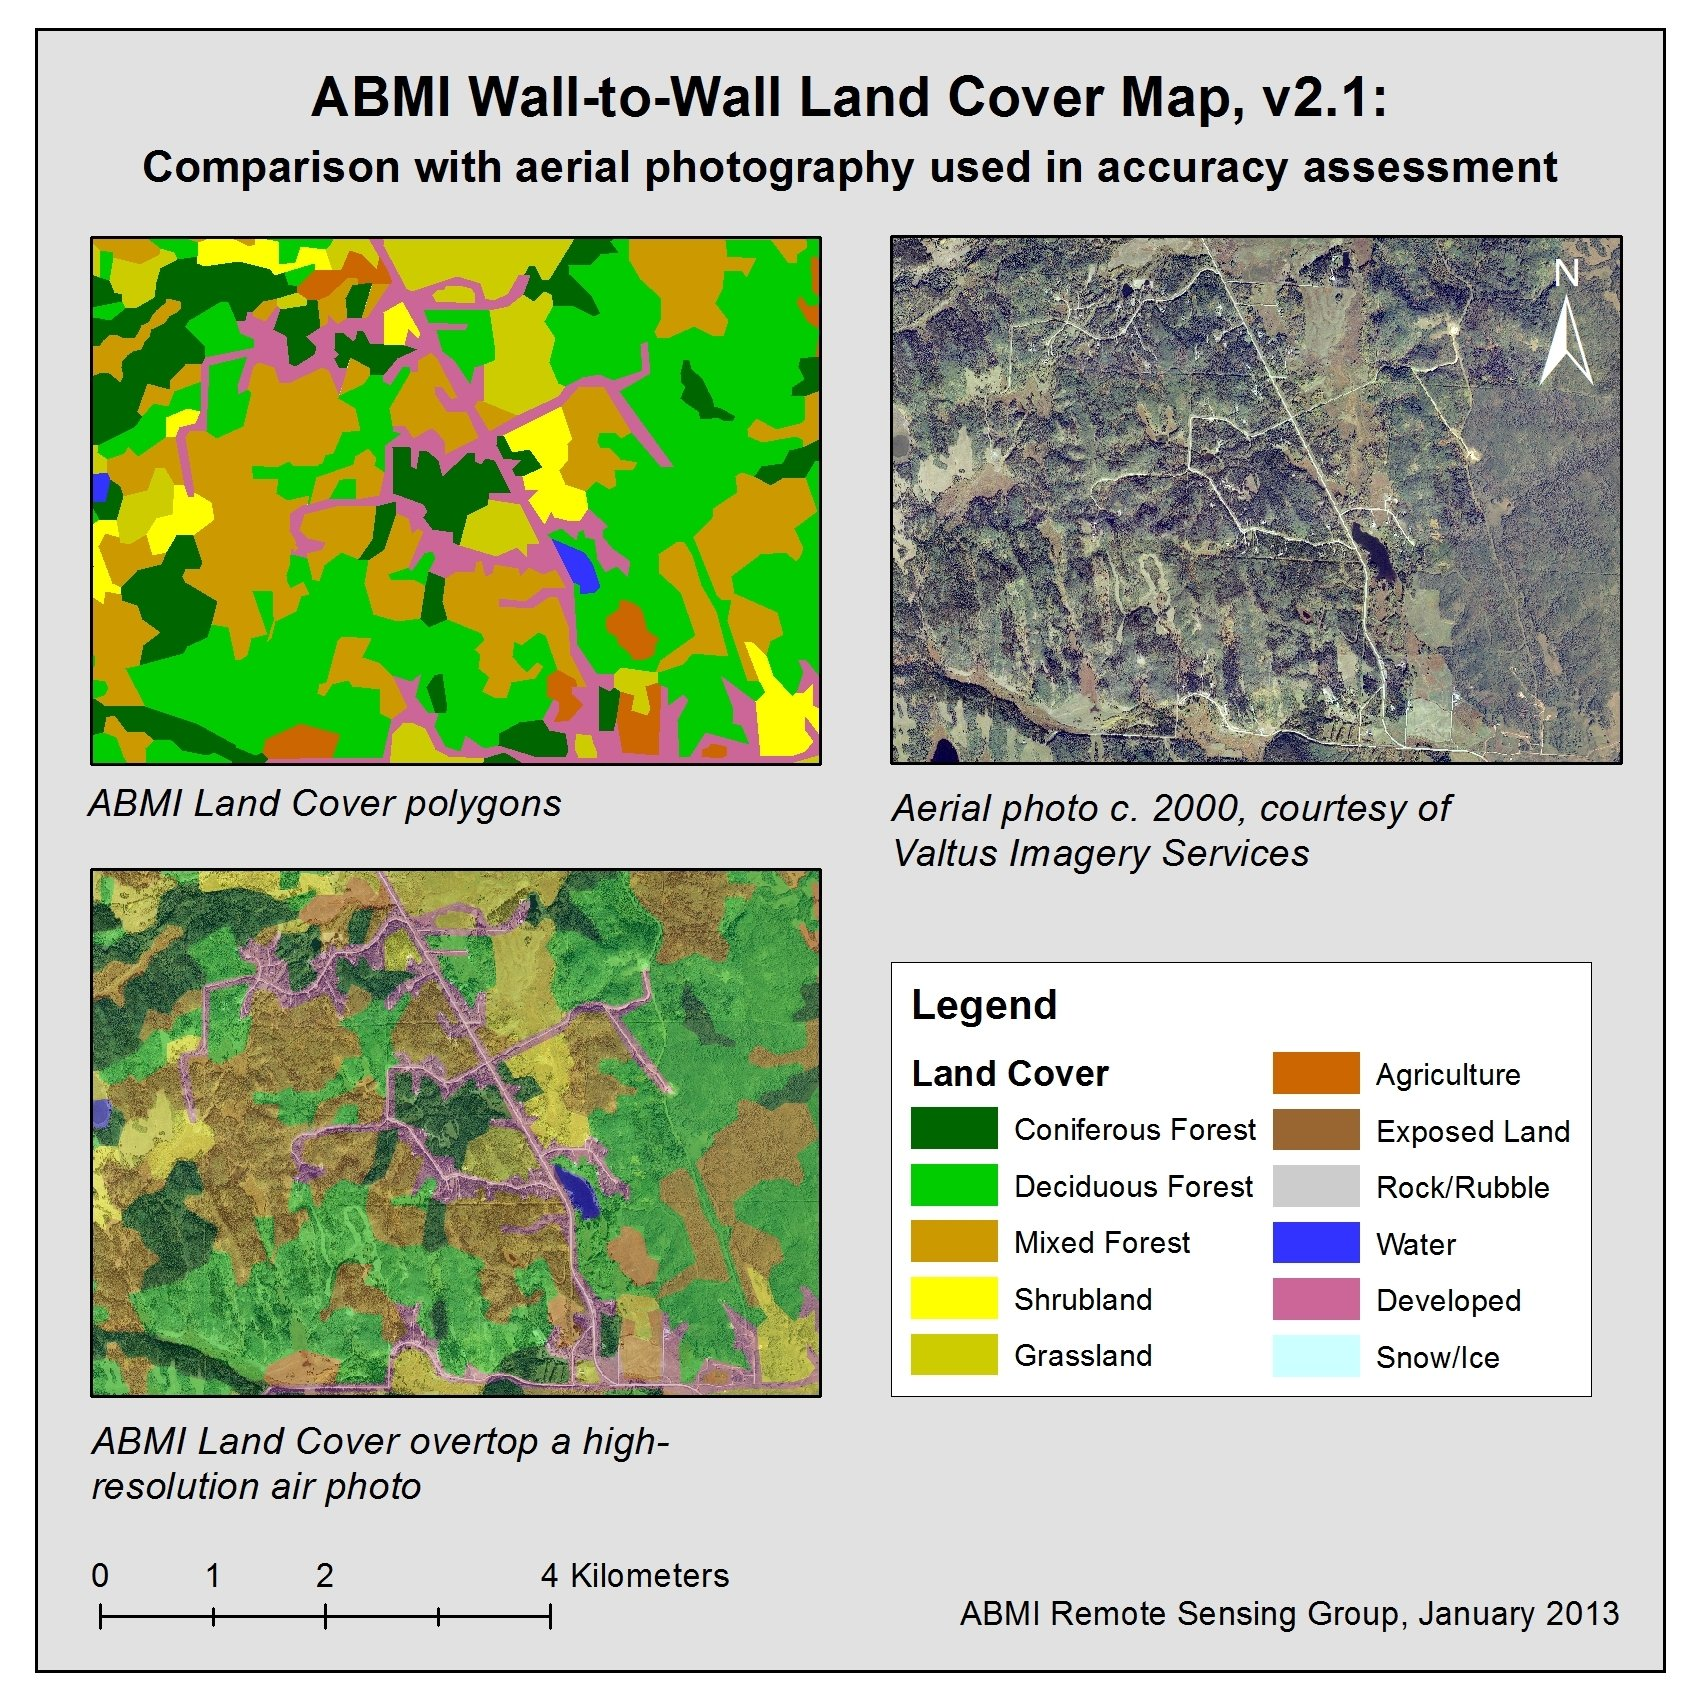 Figure showing ABMI Land Cover versus high-resolution photography.